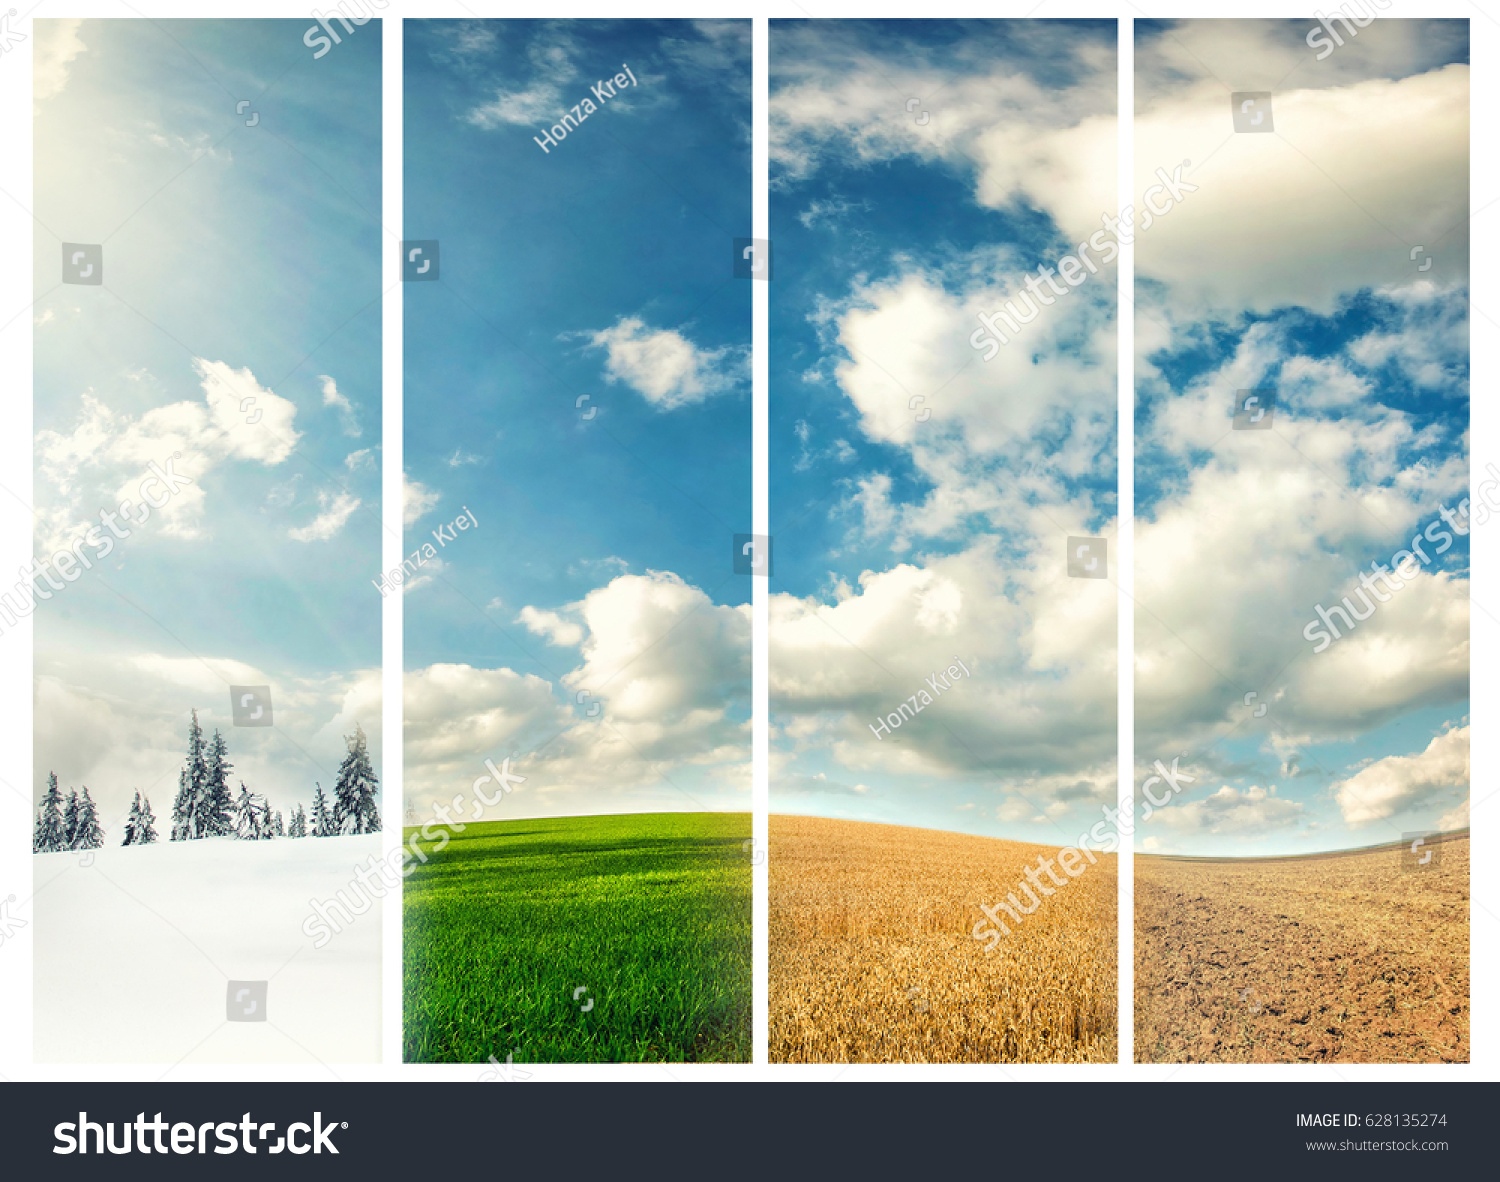 four seasons of year, winter, spring, summer and autumn, nature photo concept #628135274